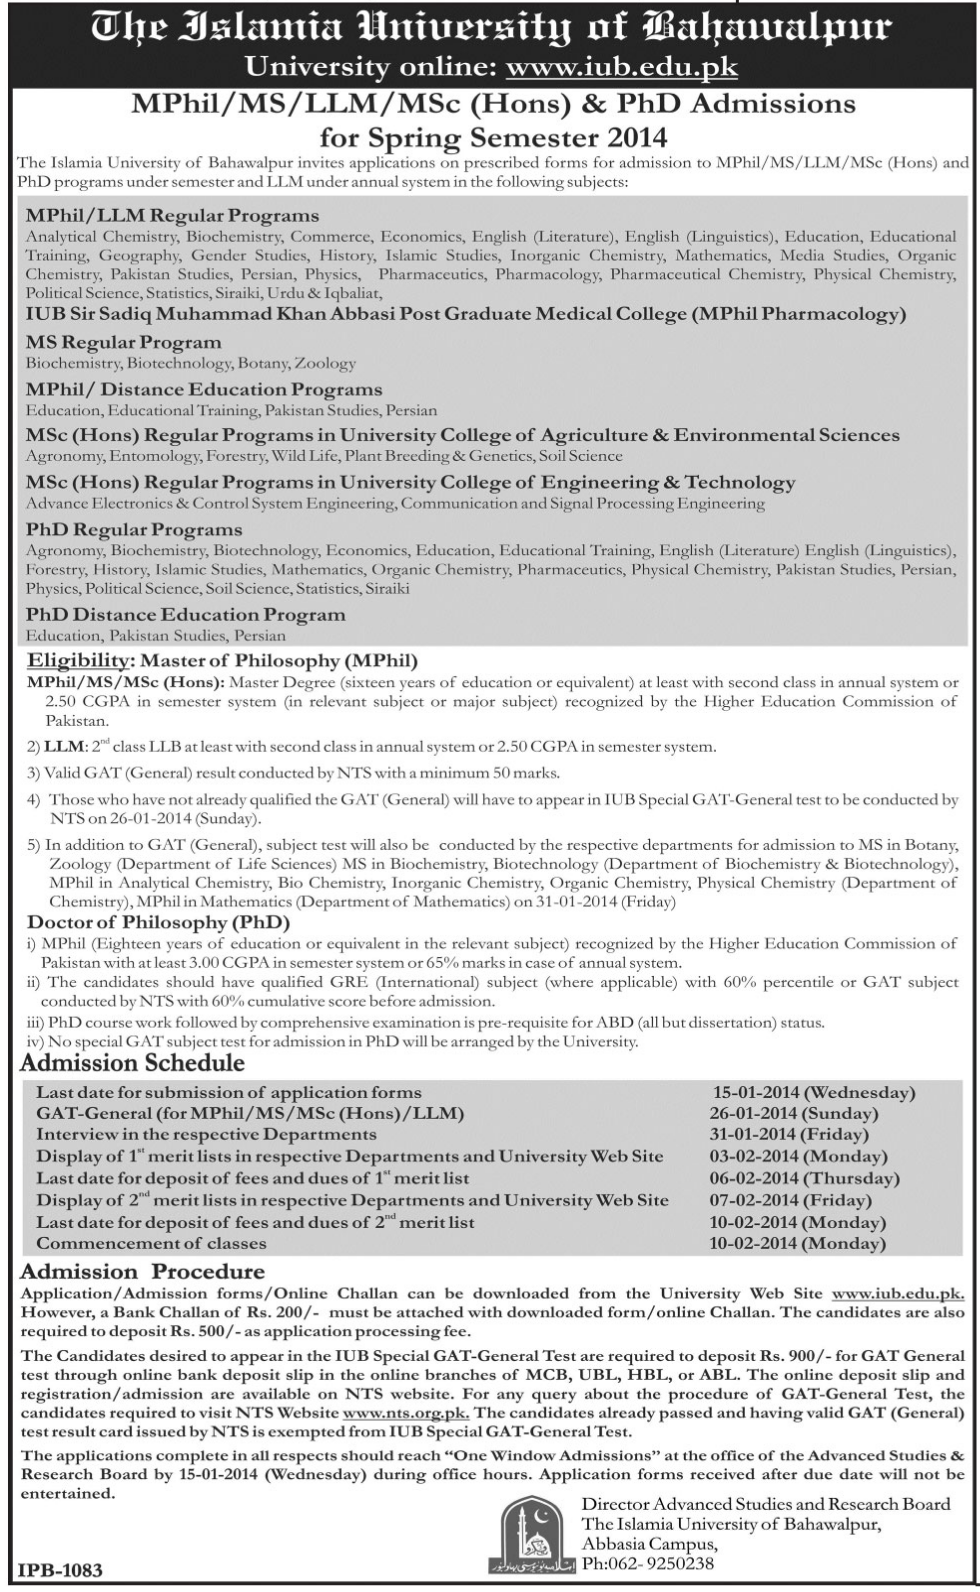 The Islamia University of Bahawalpur IUB MPhil, MS, PhD Admissions 2014